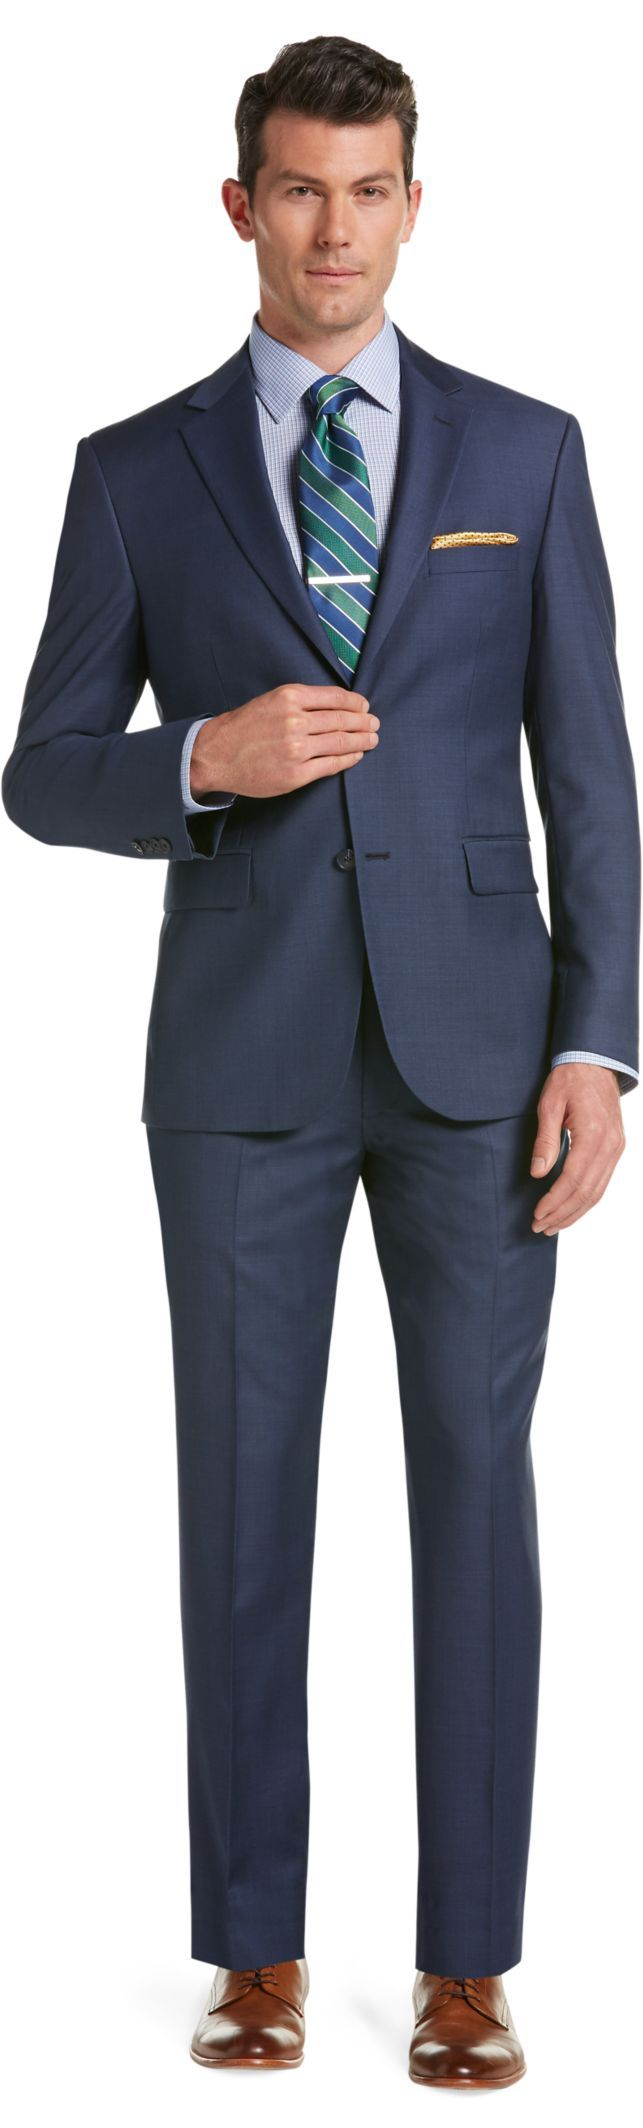 52d8fc1aa480 Traveler Collection Tailored Fit Sharkskin Suit - Big & Tall ...